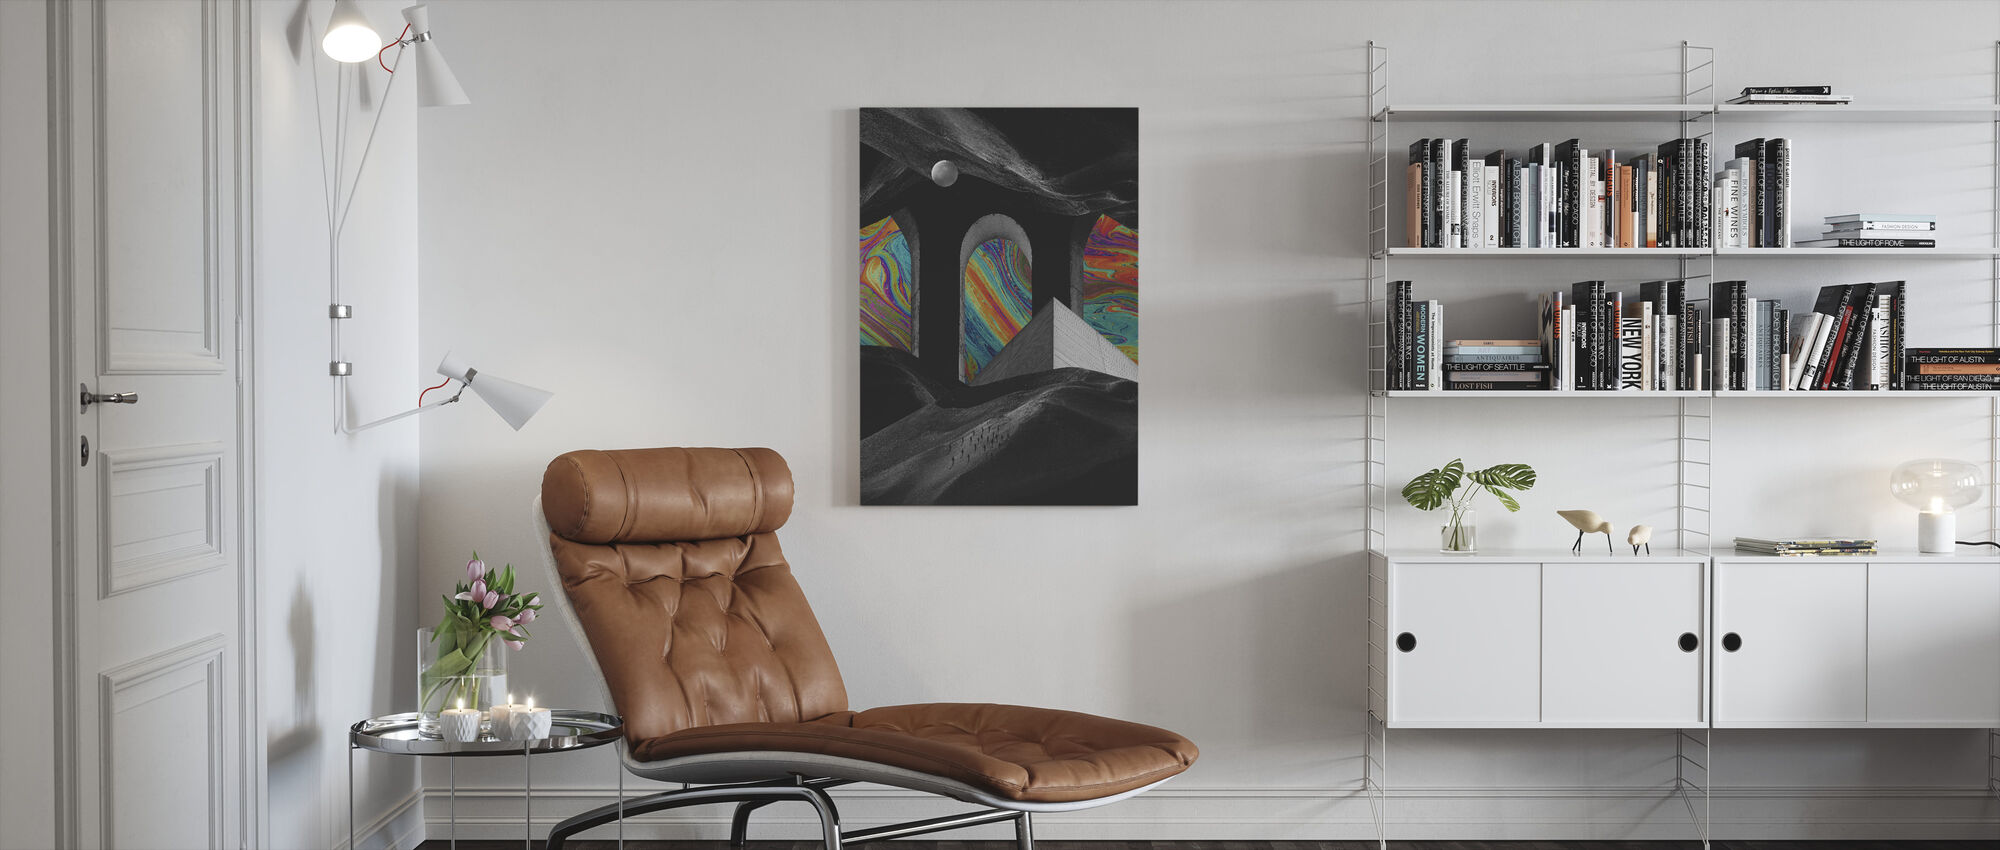 Hoc - Canvas print - Living Room